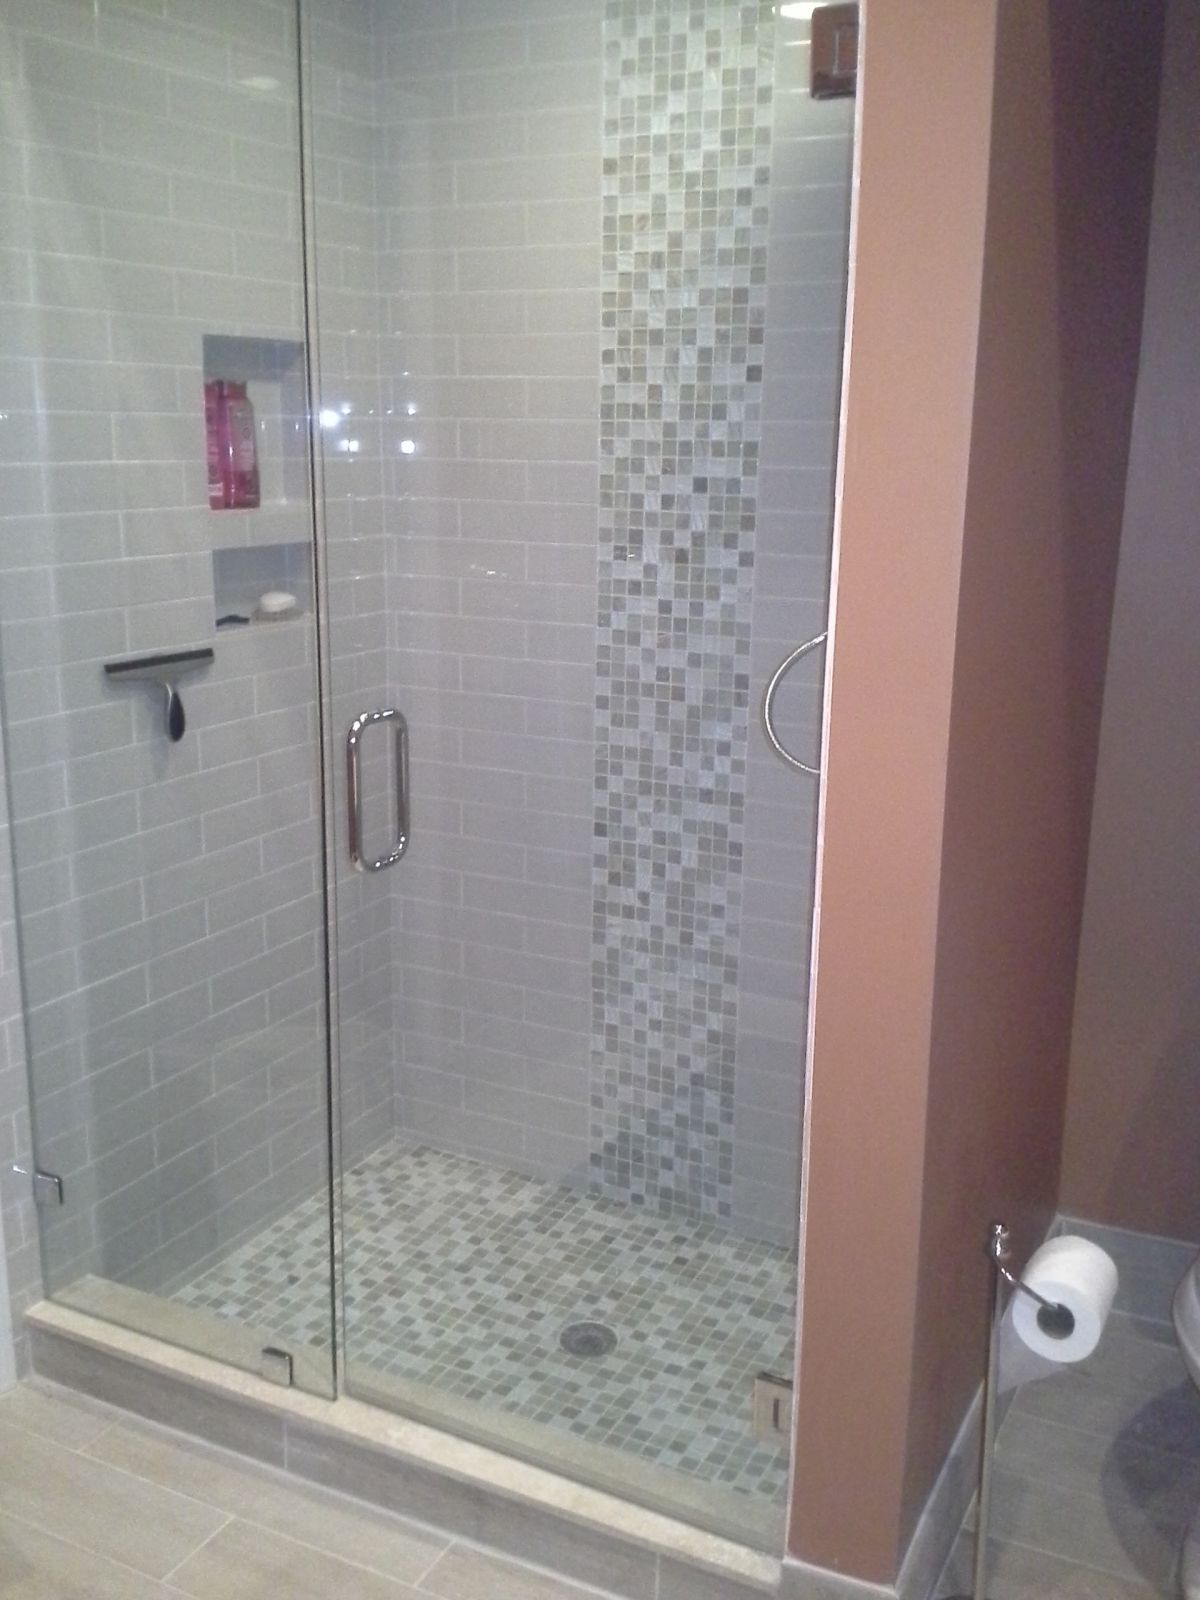 Our Services South Florida Flooring Contractor Installation - South florida bathroom remodeling